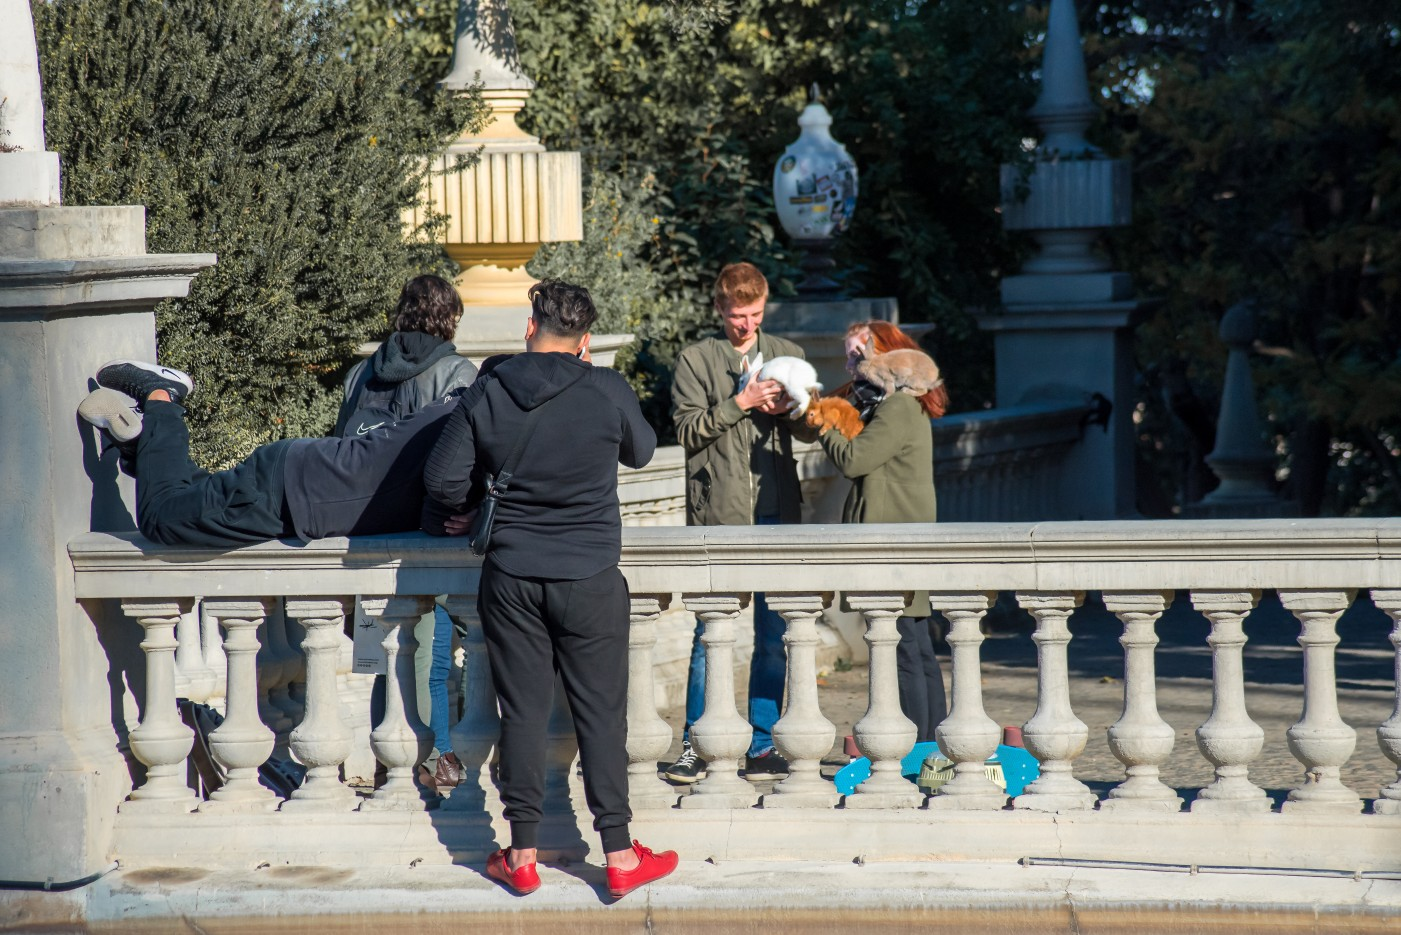 Tourists in Barcelona at Christmas time